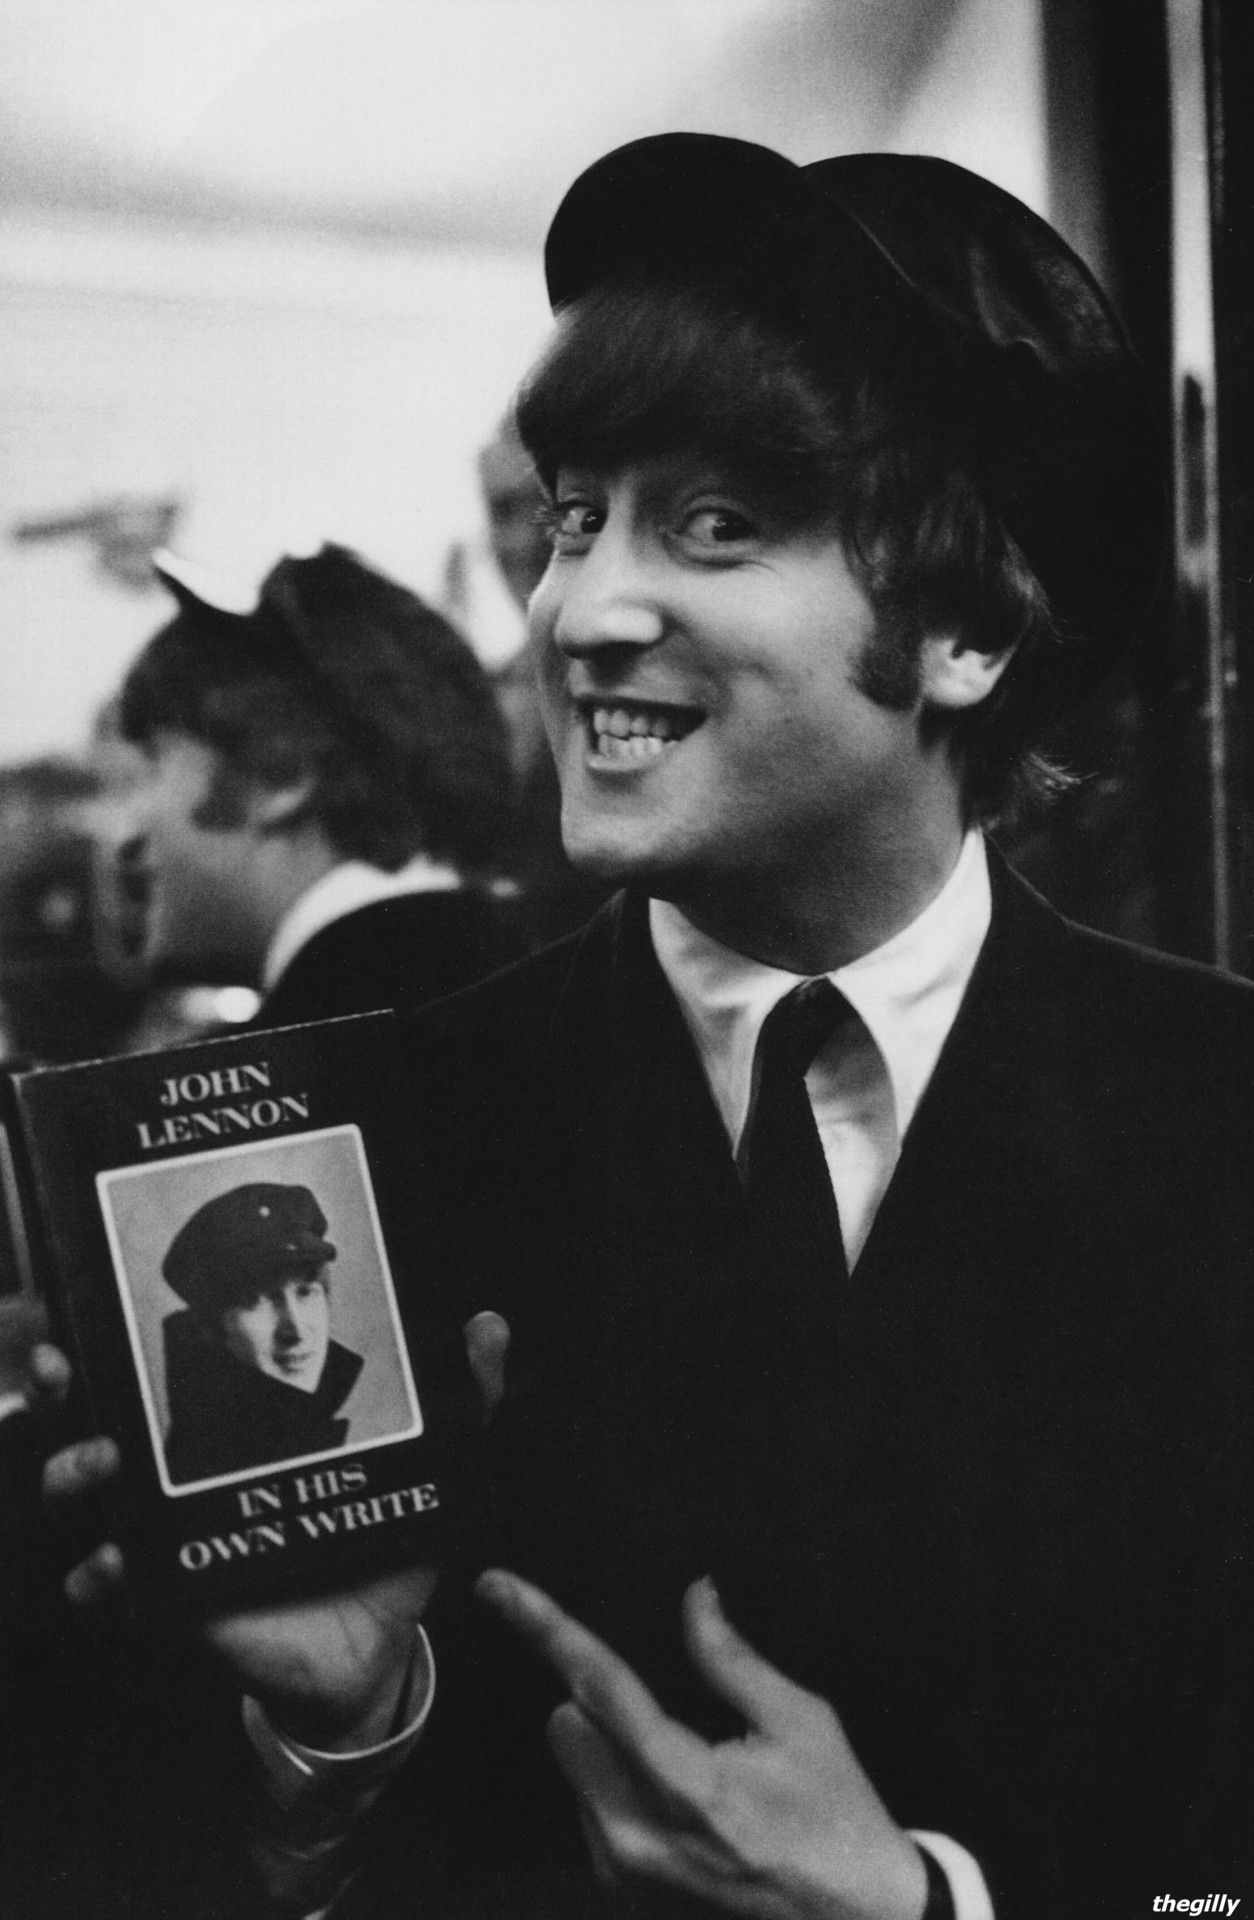 John Smiles With His First Book In His Own Write 1964 The Beatles John Lennon John Lennon Beatles